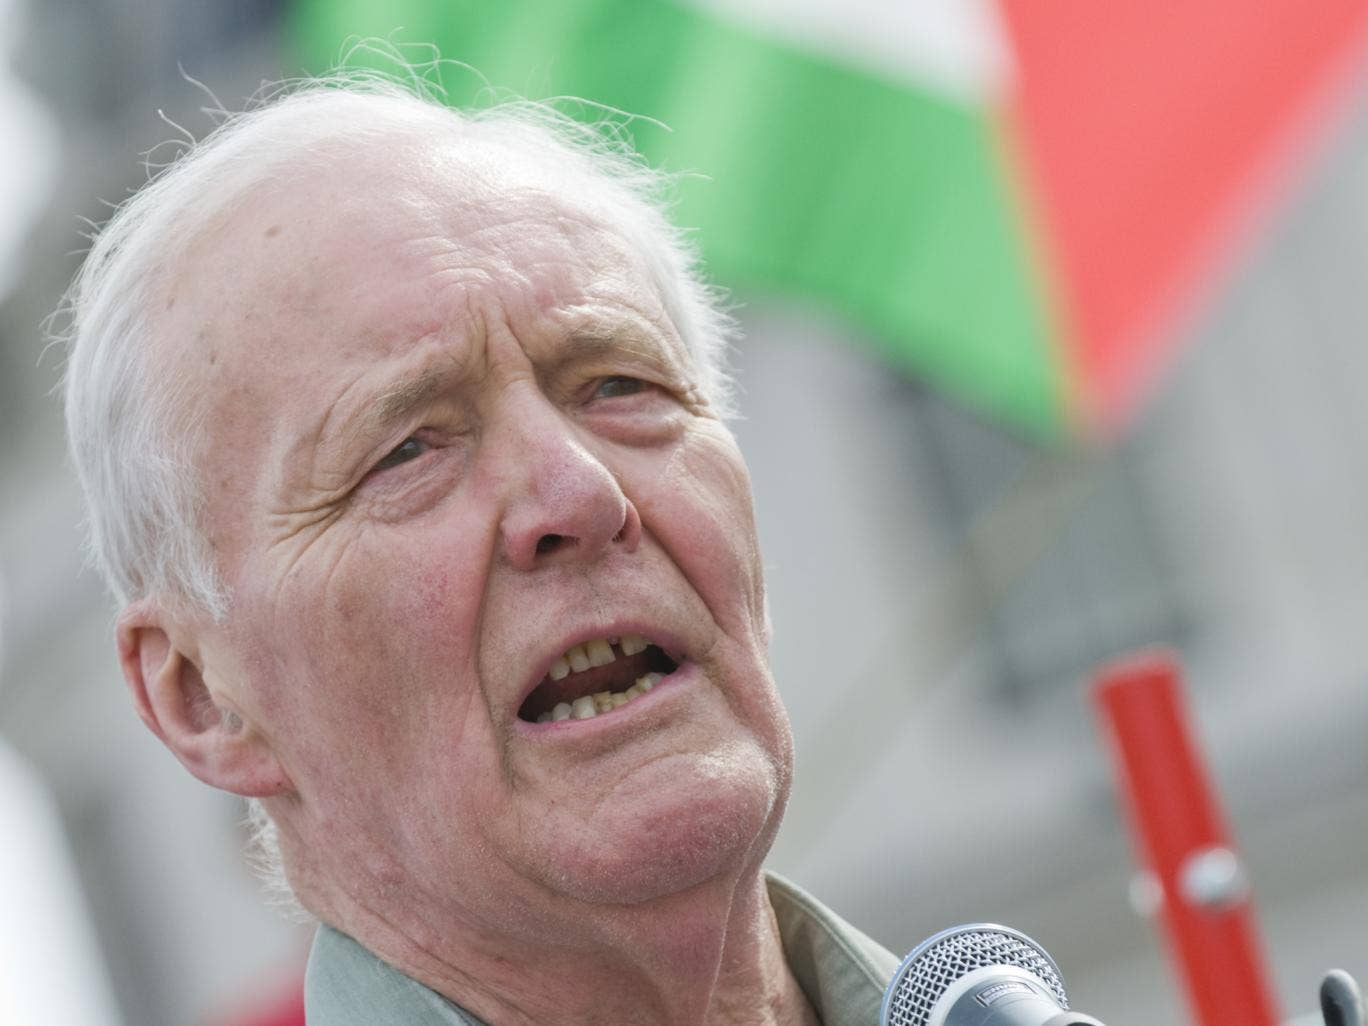 May 2008: Tony Benn speaking at march for a free Palestine on the 60th anniversary of Israel's nationhood